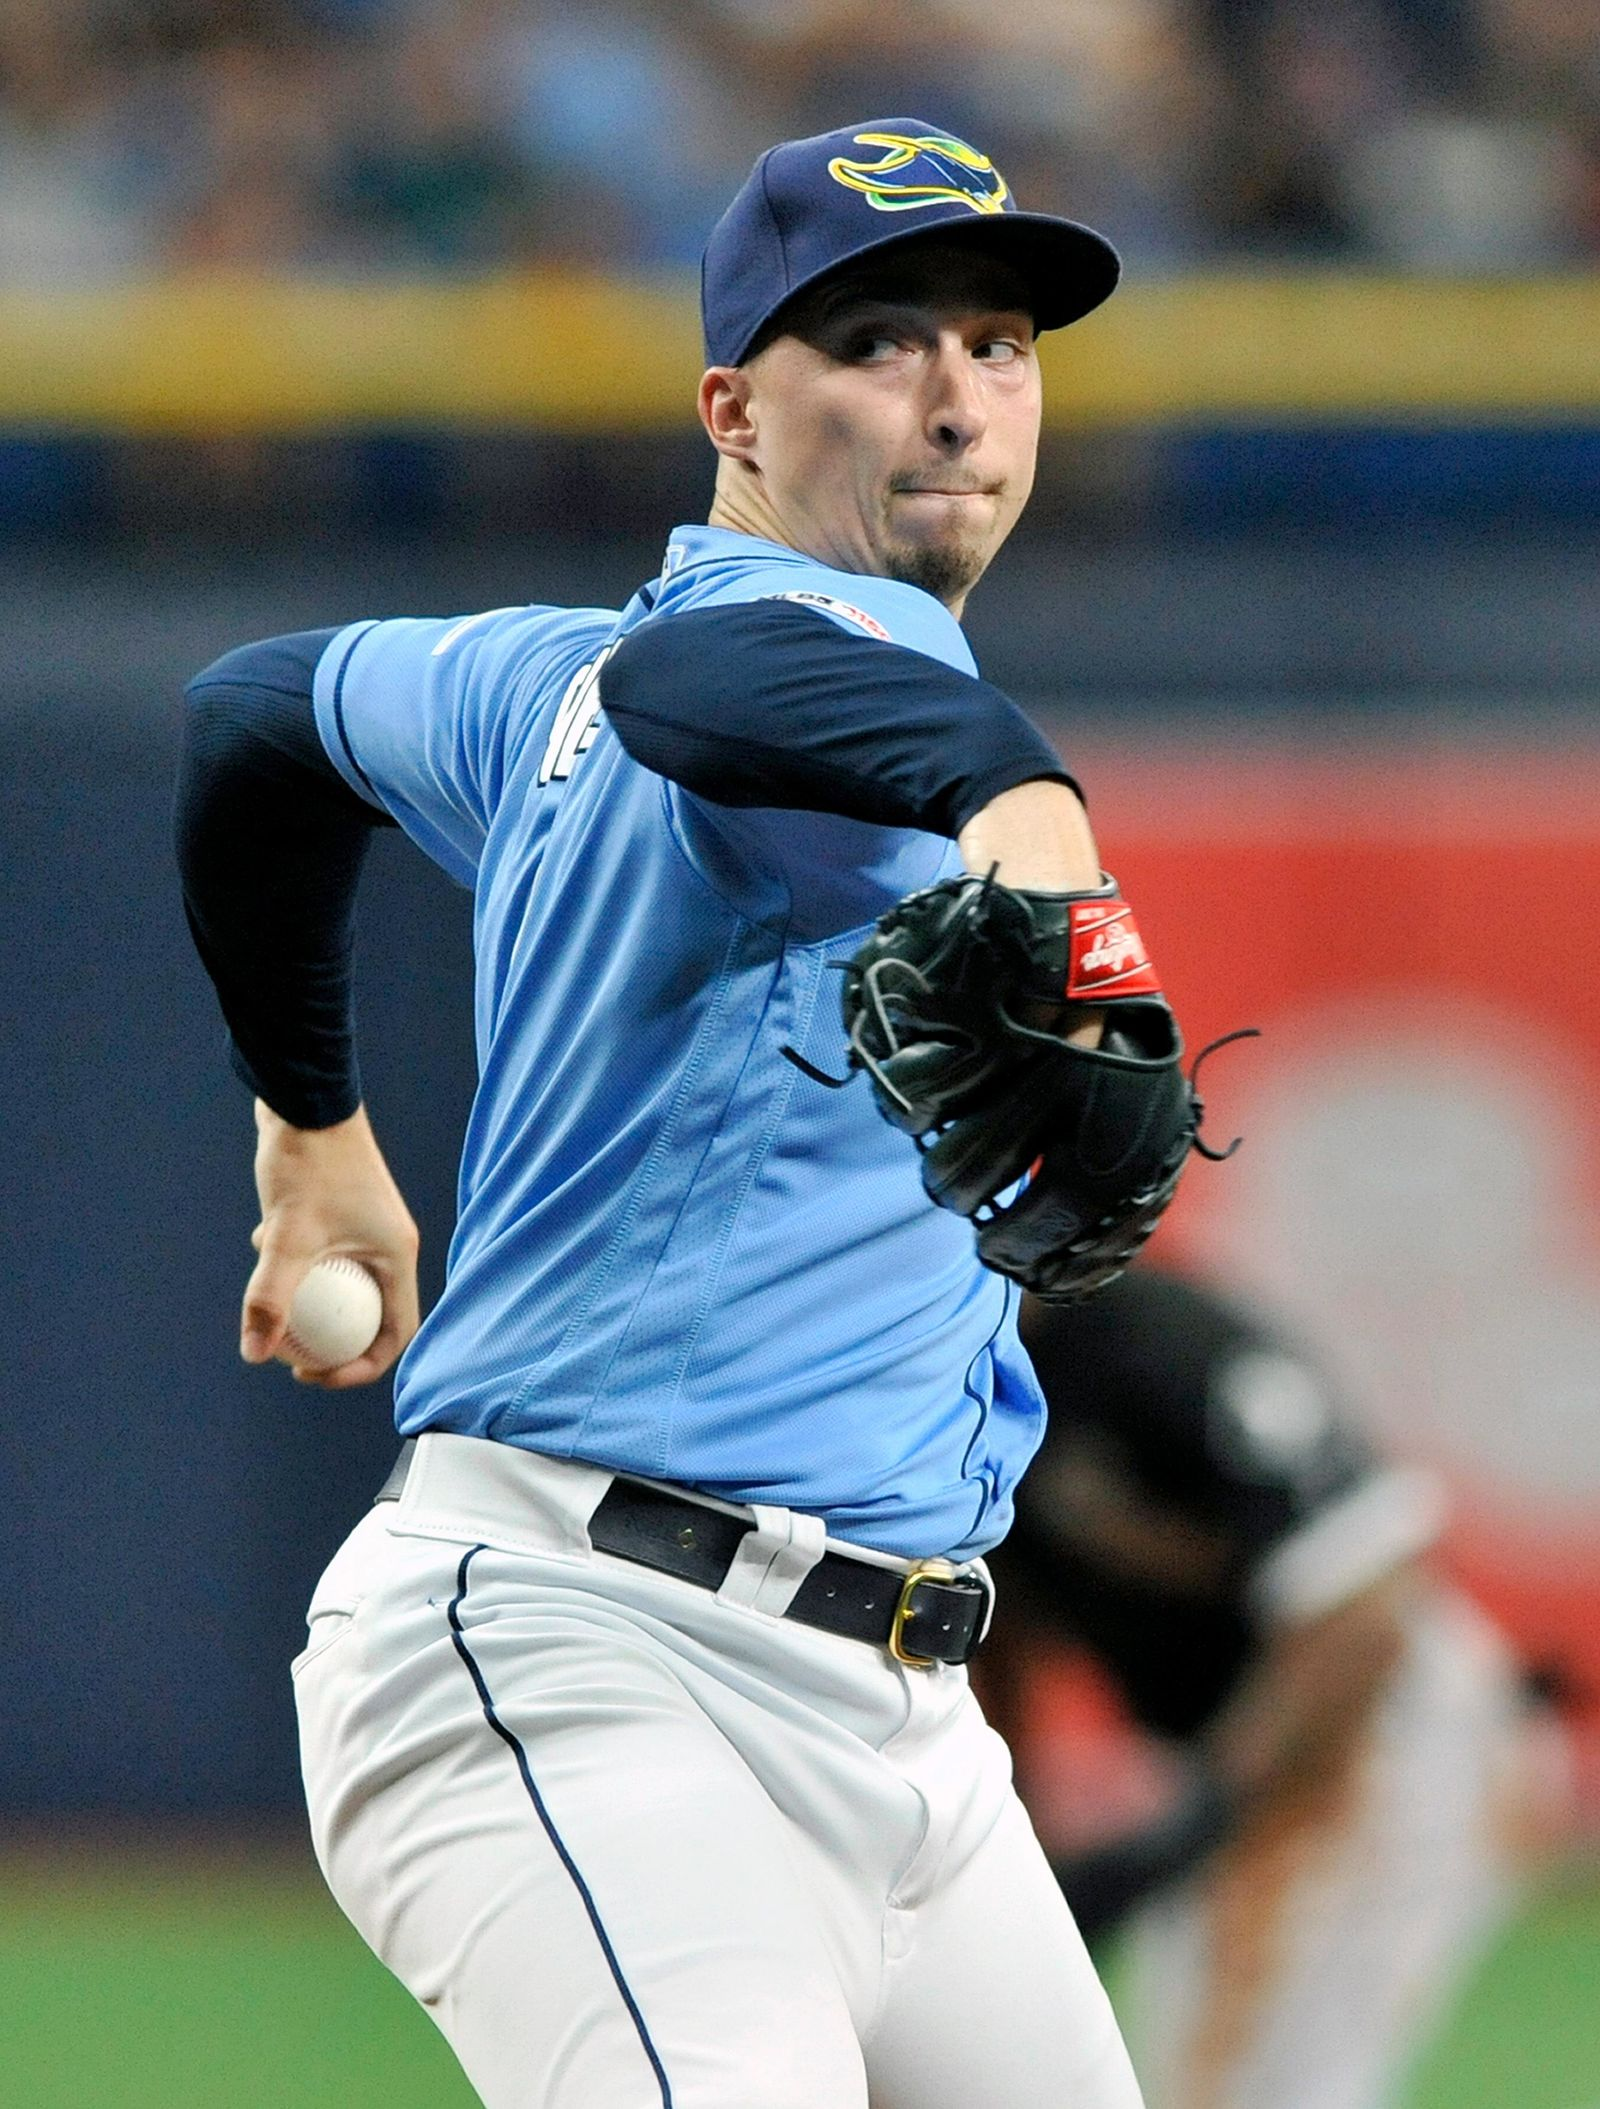 Tampa Bay Rays starter Blake Snell pitches against the Chicago White Sox during the first inning of a baseball game Sunday, July 21, 2019, in St. Petersburg, Fla. (AP Photo/Steve Nesius)